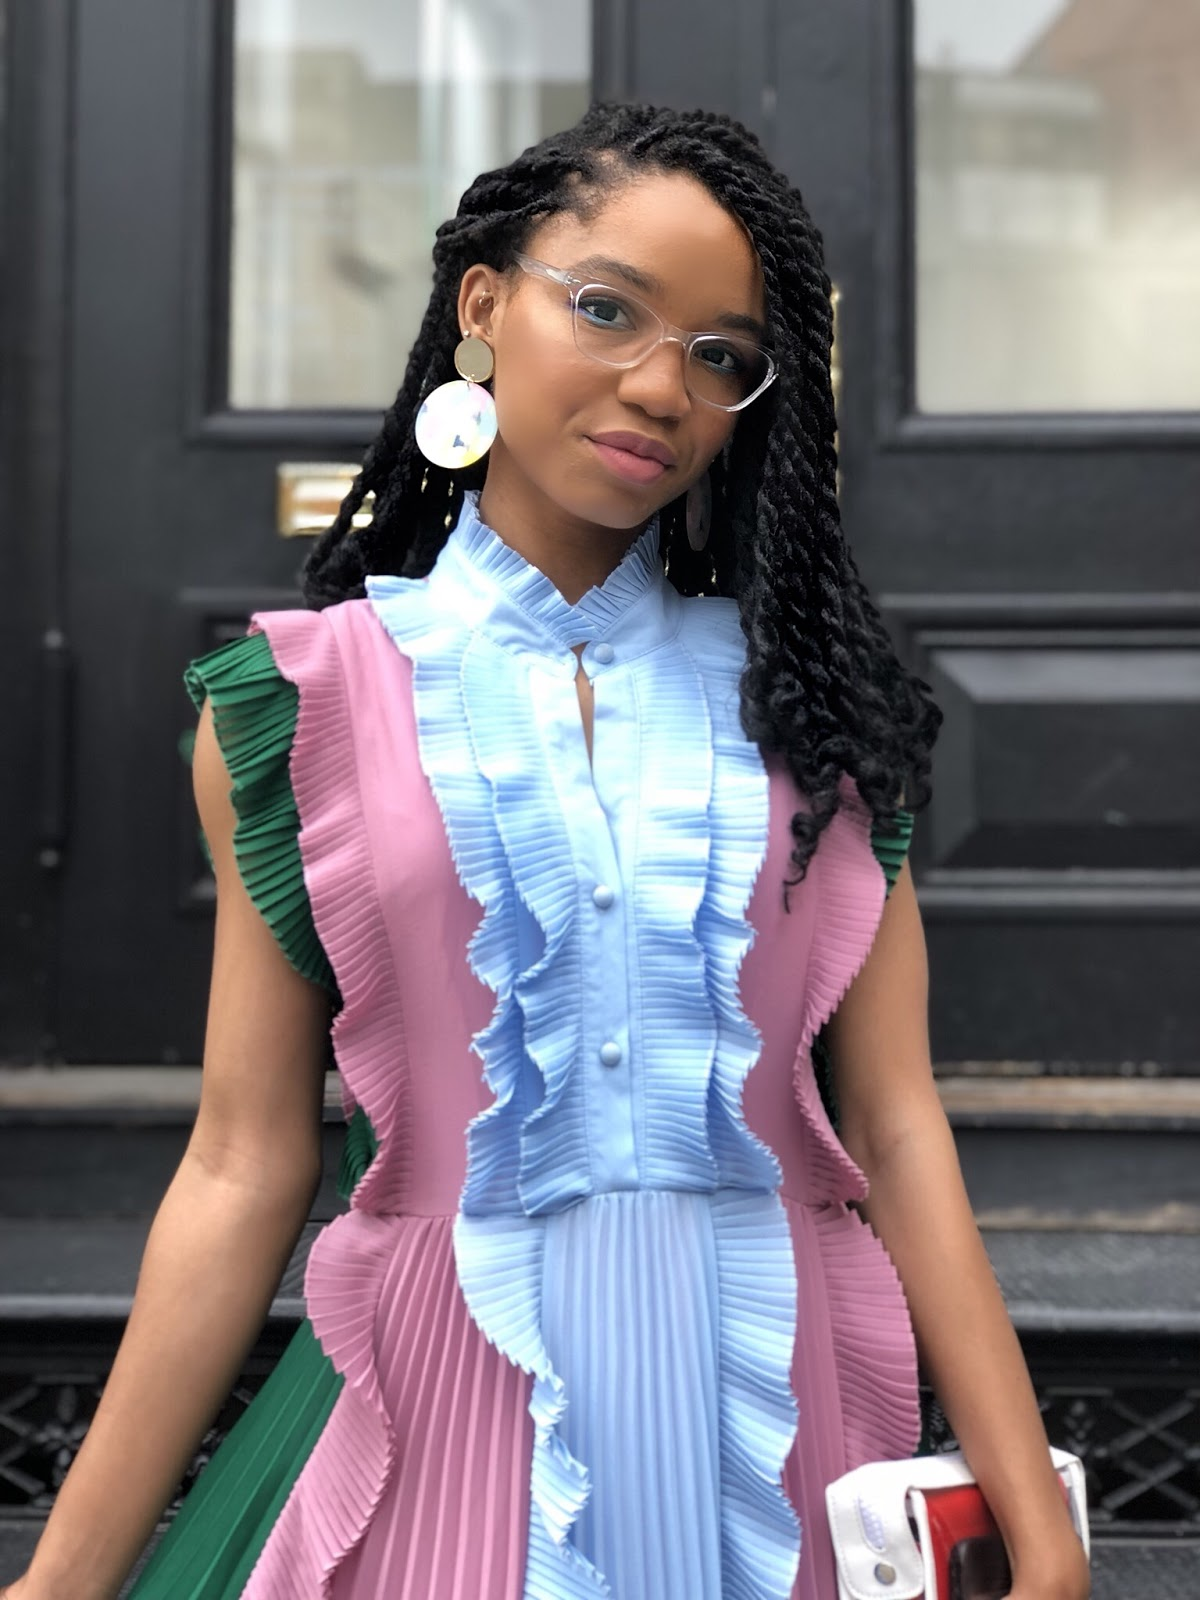 The Strong Suit, NYFW Outfit, New York Fashion Week Street Style, Spring/Summer NYFW 2020, Ruffles, Mutli-colored Dress, Midi Dress, Moon and Lola, NC Blogger